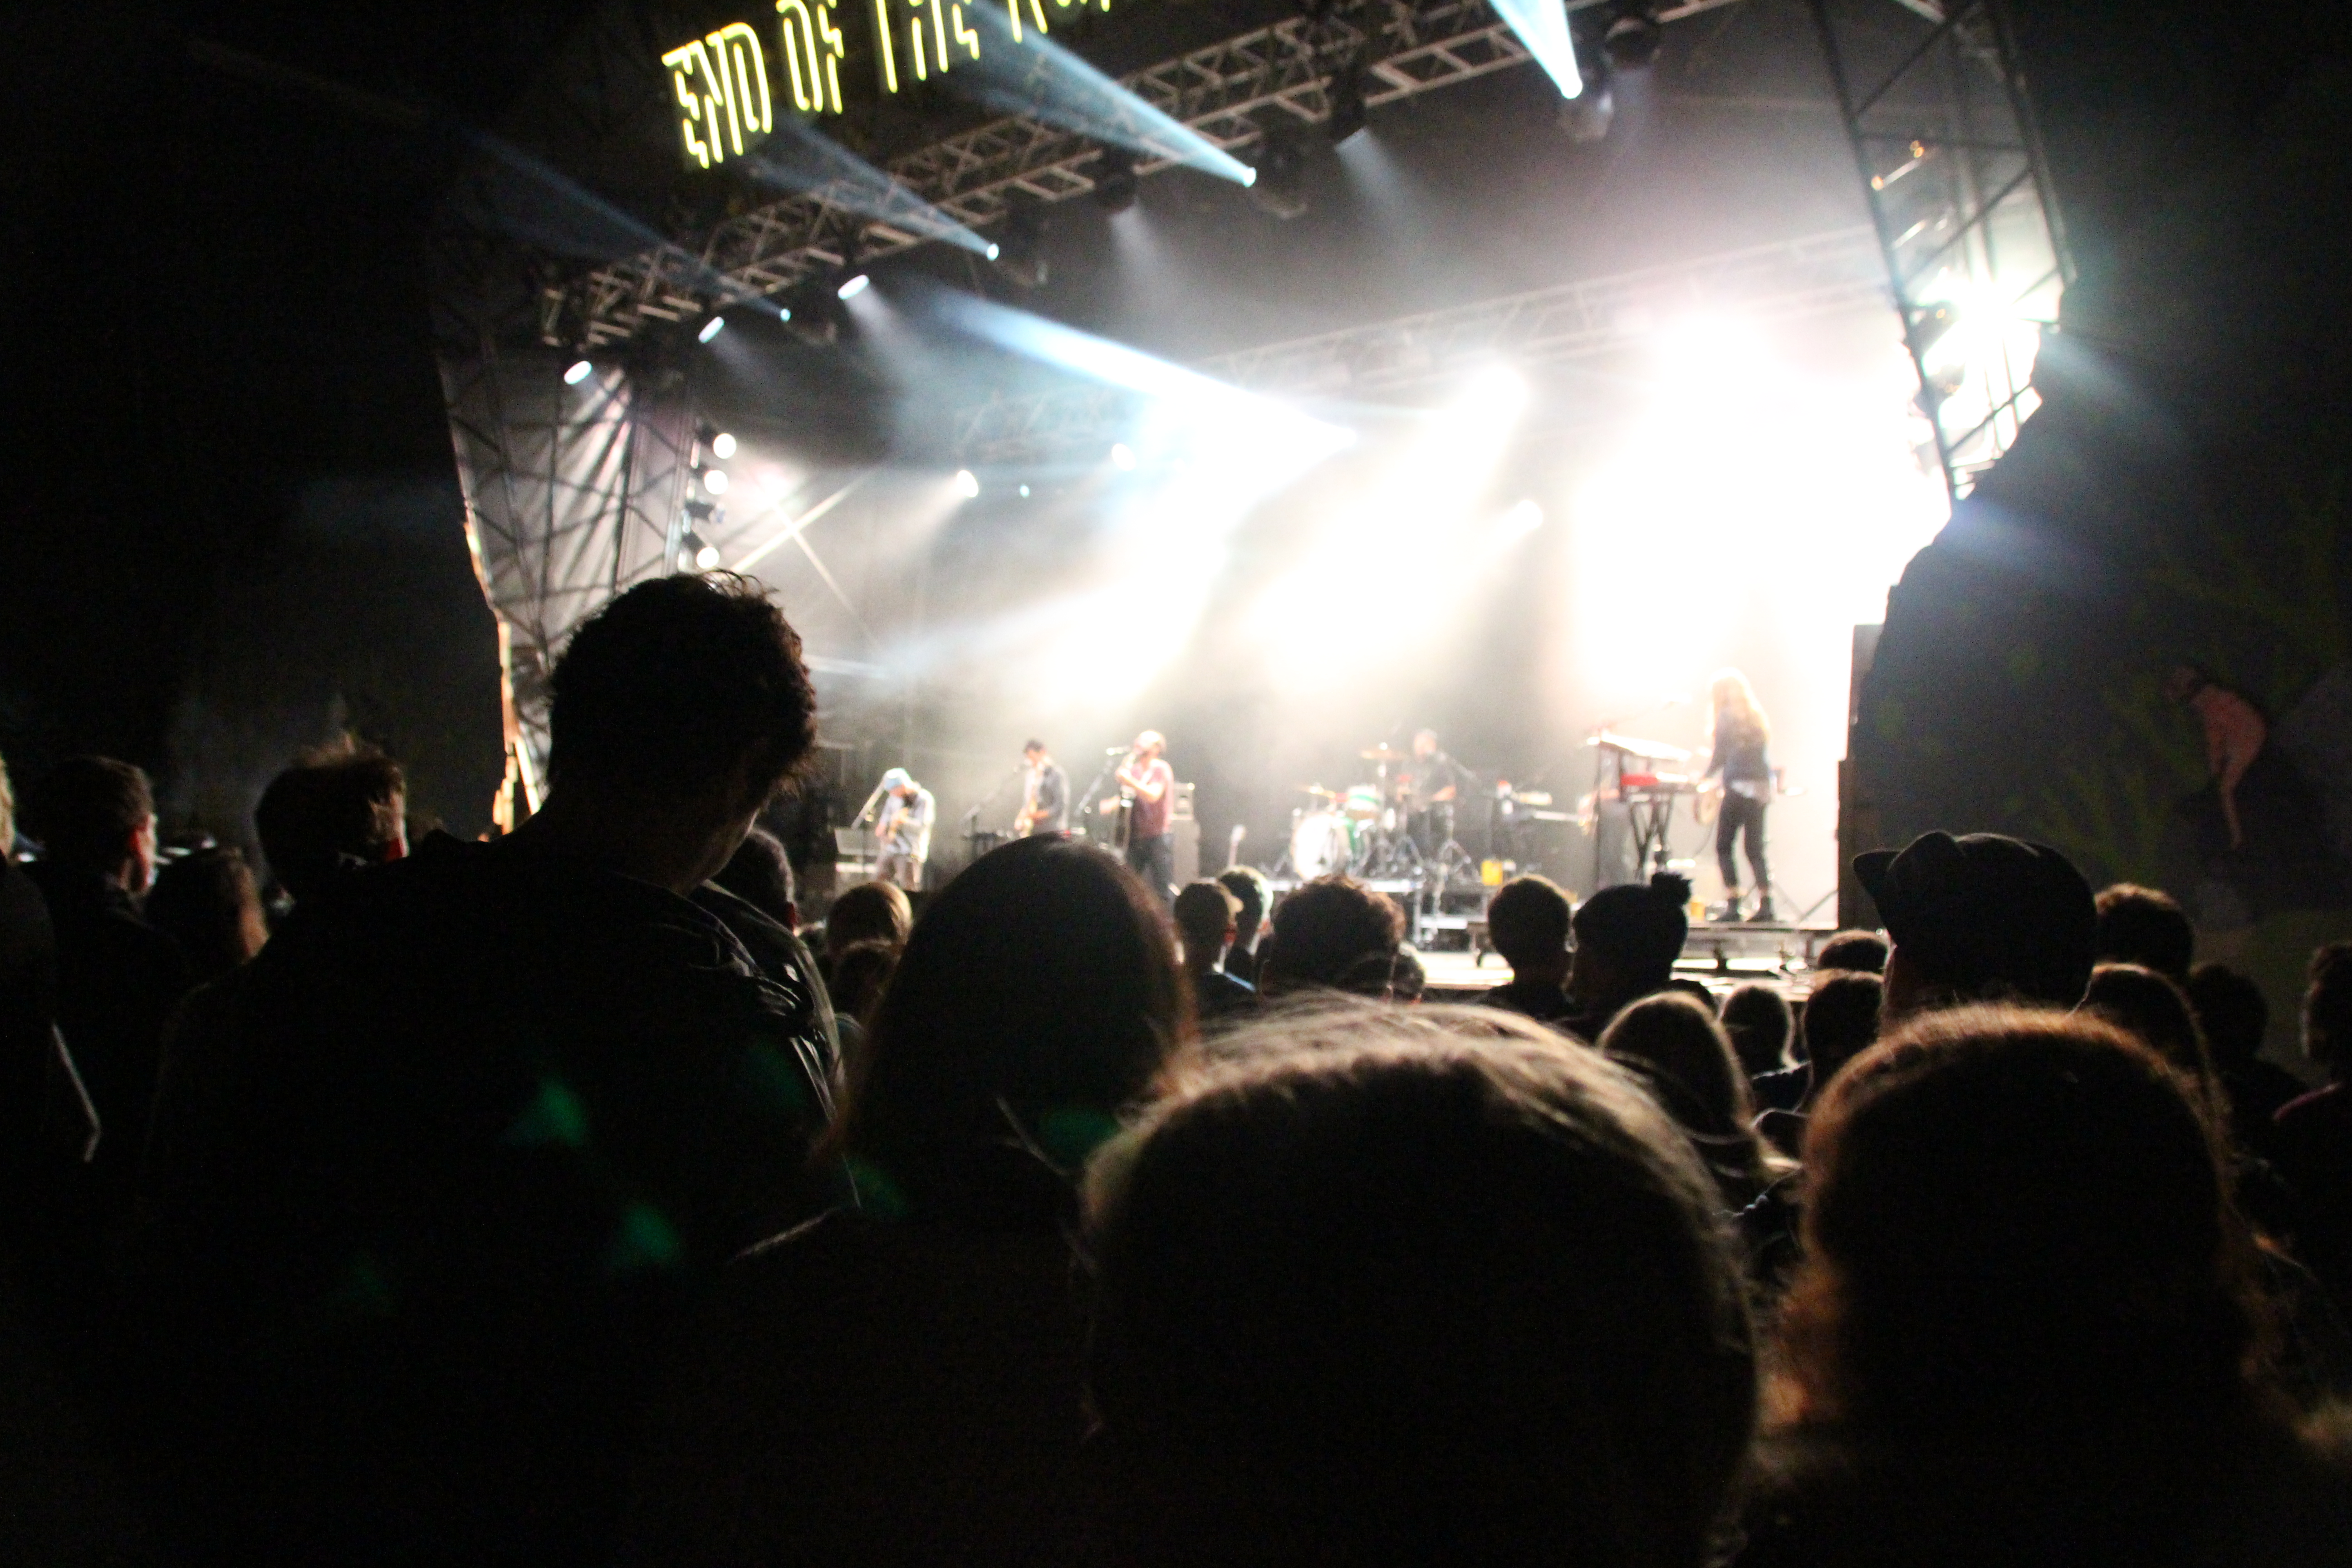 The Shins, in the crowd